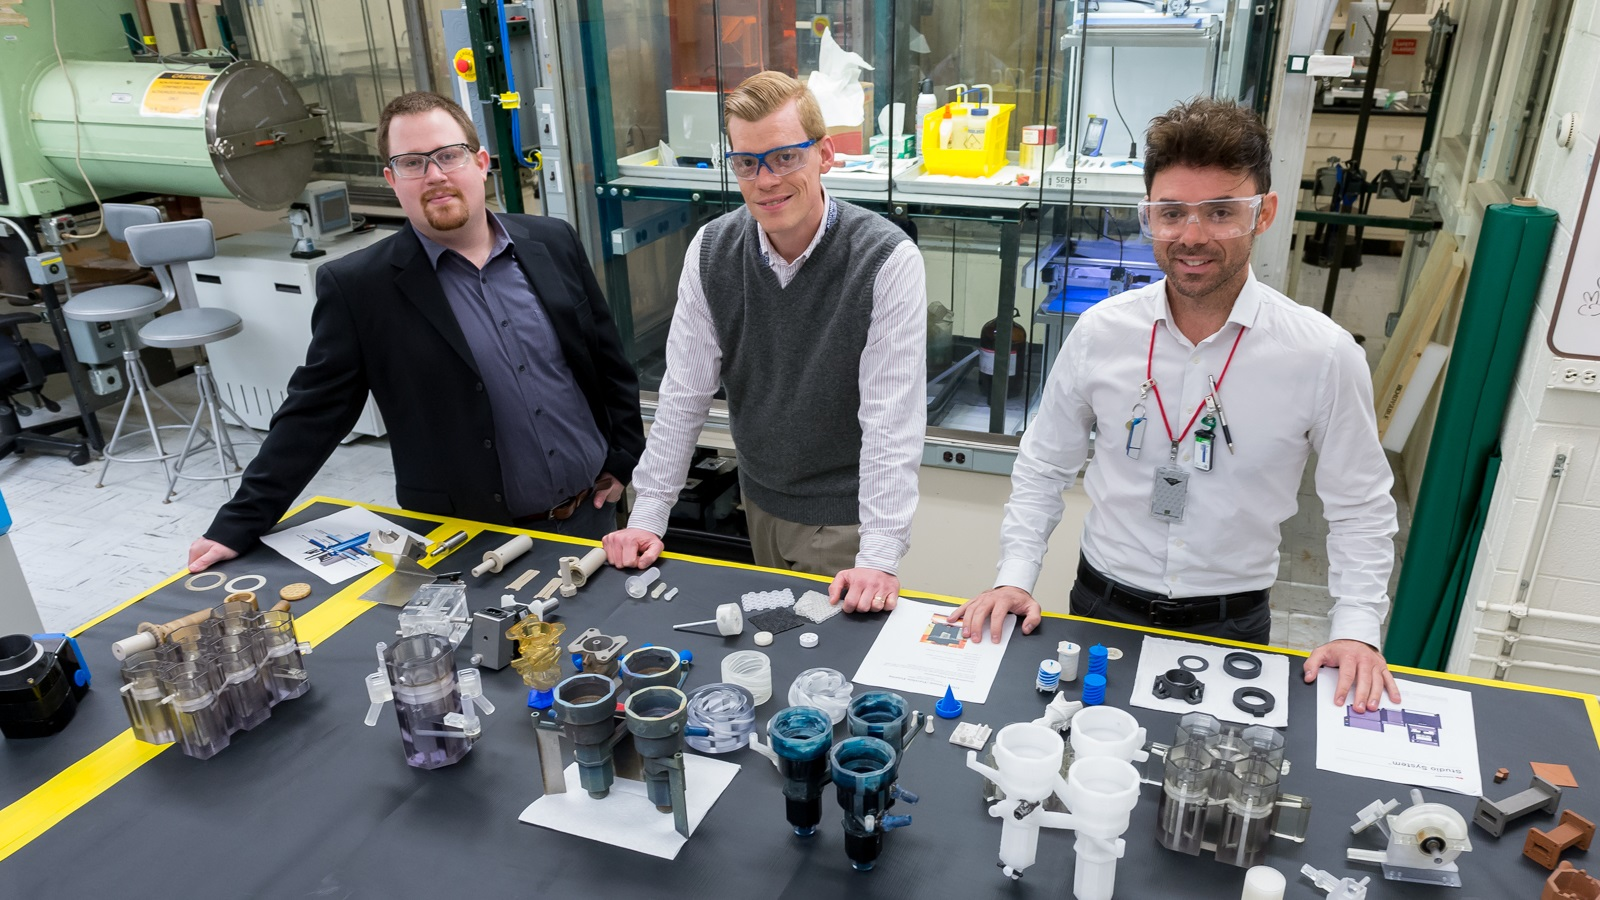 For the first time, Argonne scientists have printed 3D parts that pave the way to recycling up to 97 percent of the waste produced by nuclear reactors. From left to right: Peter Kozak, Andrew Breshears, M Alex Brown, co-authors of a recent Scientific Reports article detailing their breakthrough. (Image by Argonne National Laboratory.)